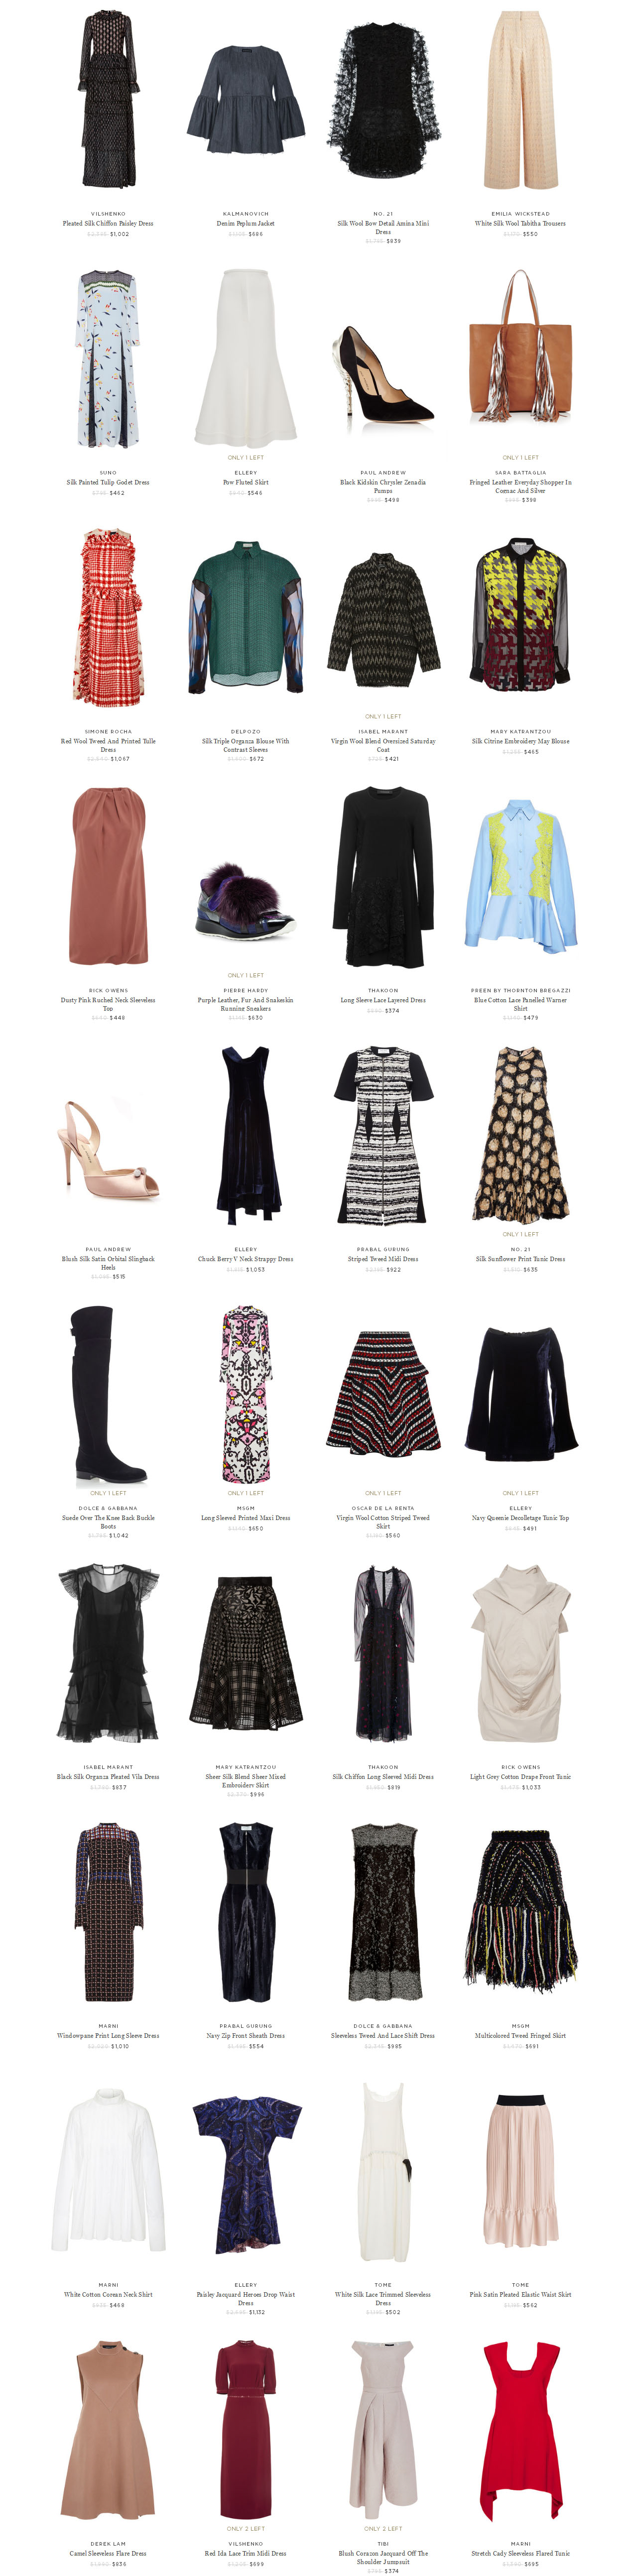 Big designer sale Moda Operandi 84 percent discount top designer brands